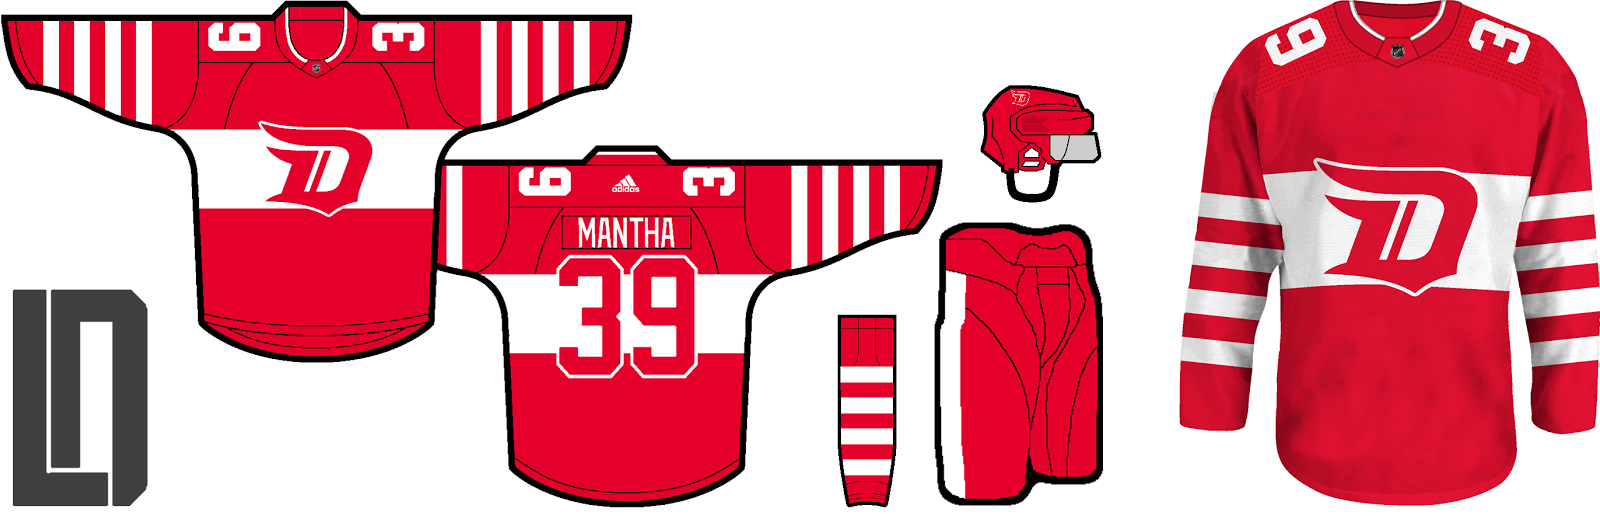 Detroit+Red+Wings+Concept.png